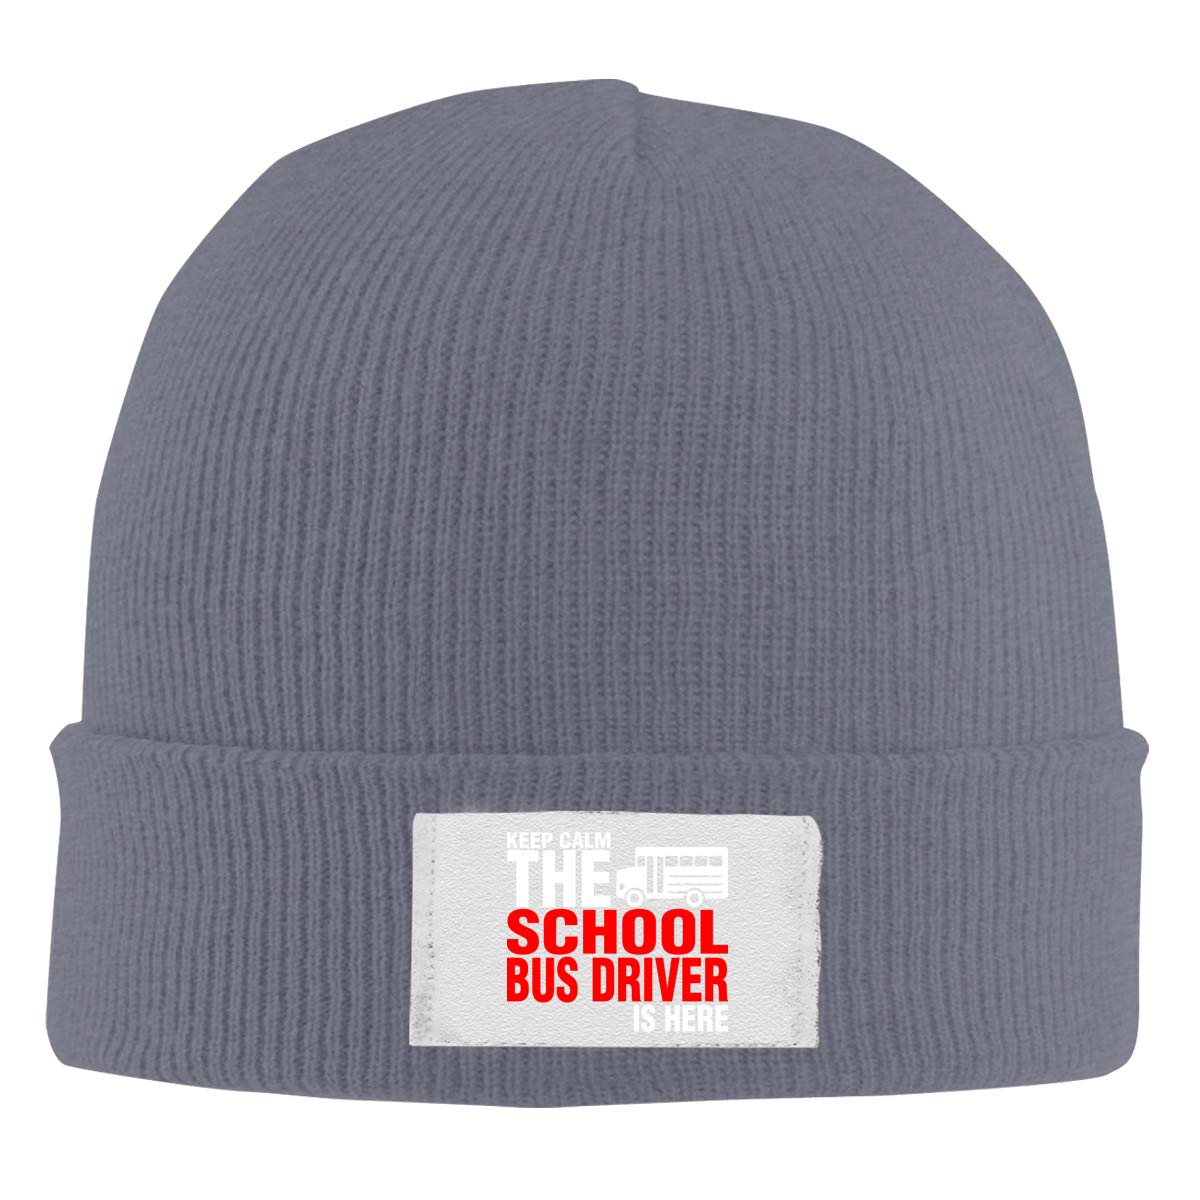 Skull Caps School Bus Driver is Here Winter Warm Knit Hats Stretchy Cuff Beanie Hat Black